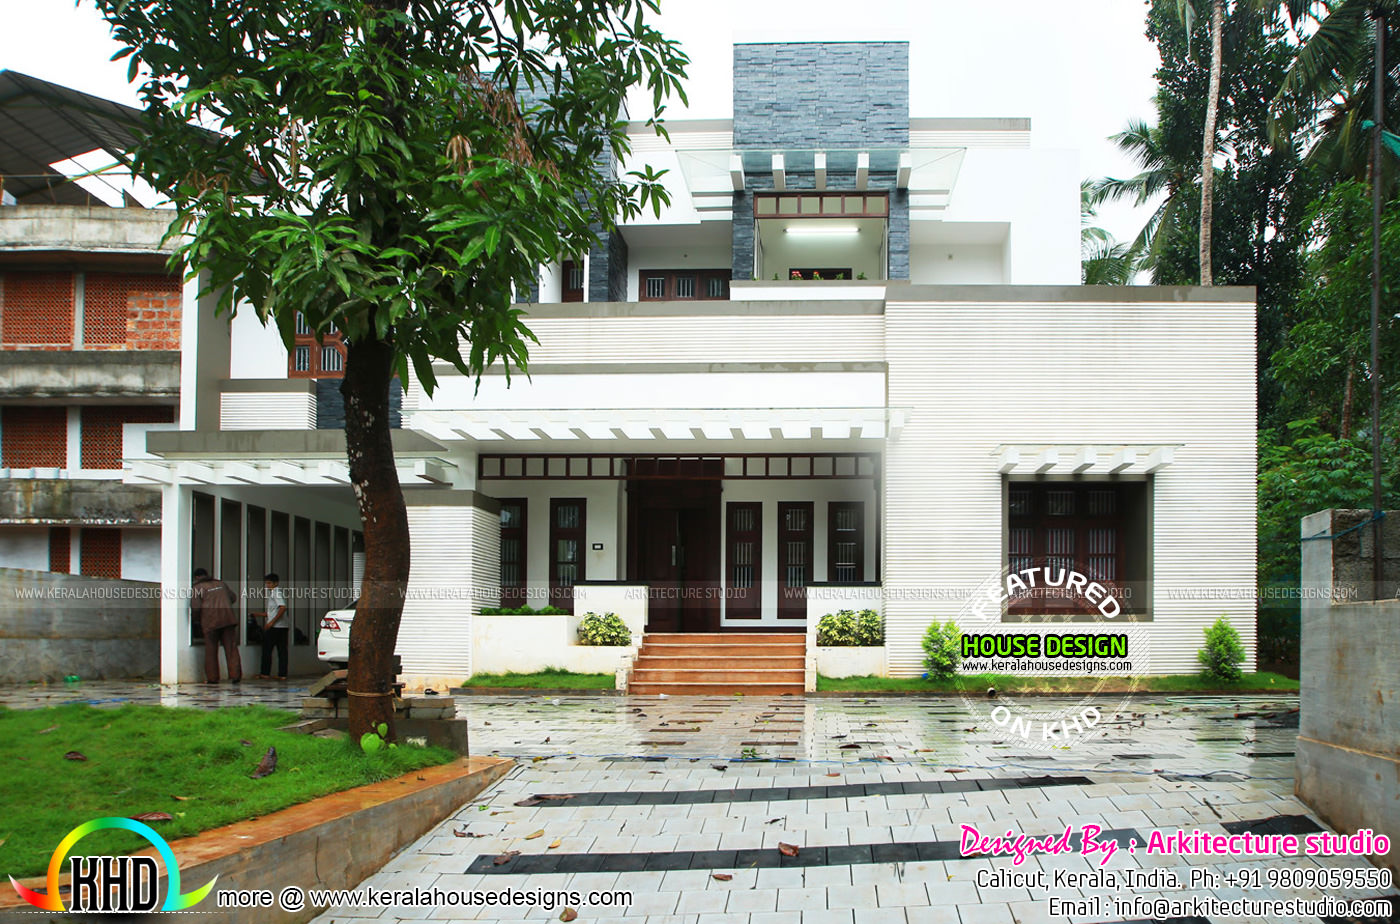 5000 sq ft house work finished kerala home design and for 5000 square feet home